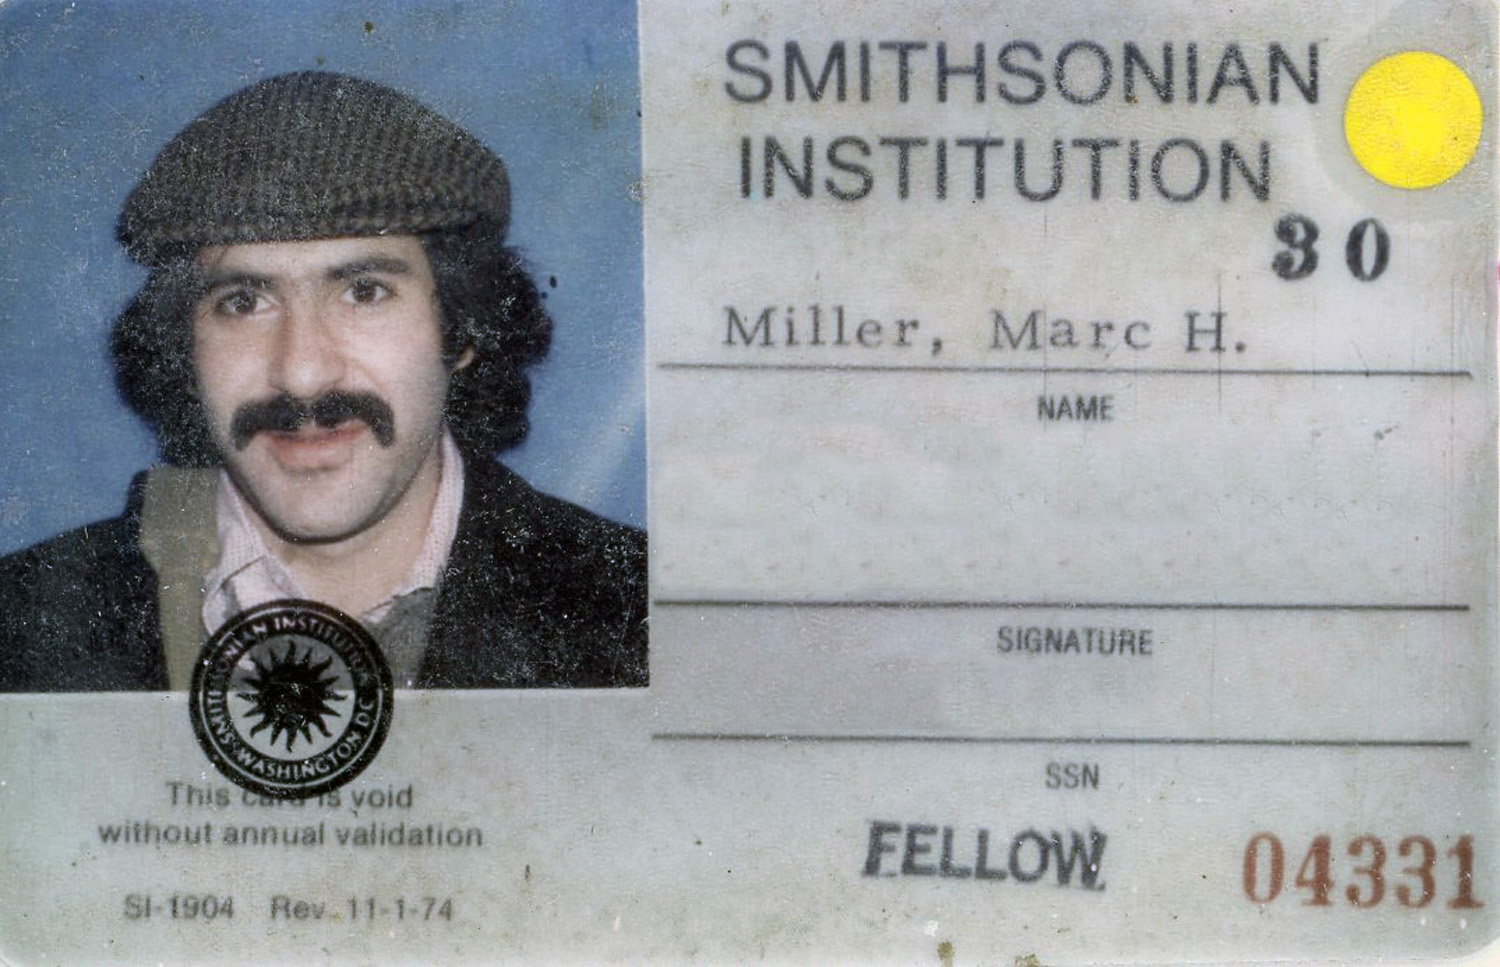 Marc's ID card for Smithsonian Institution, c. 1975